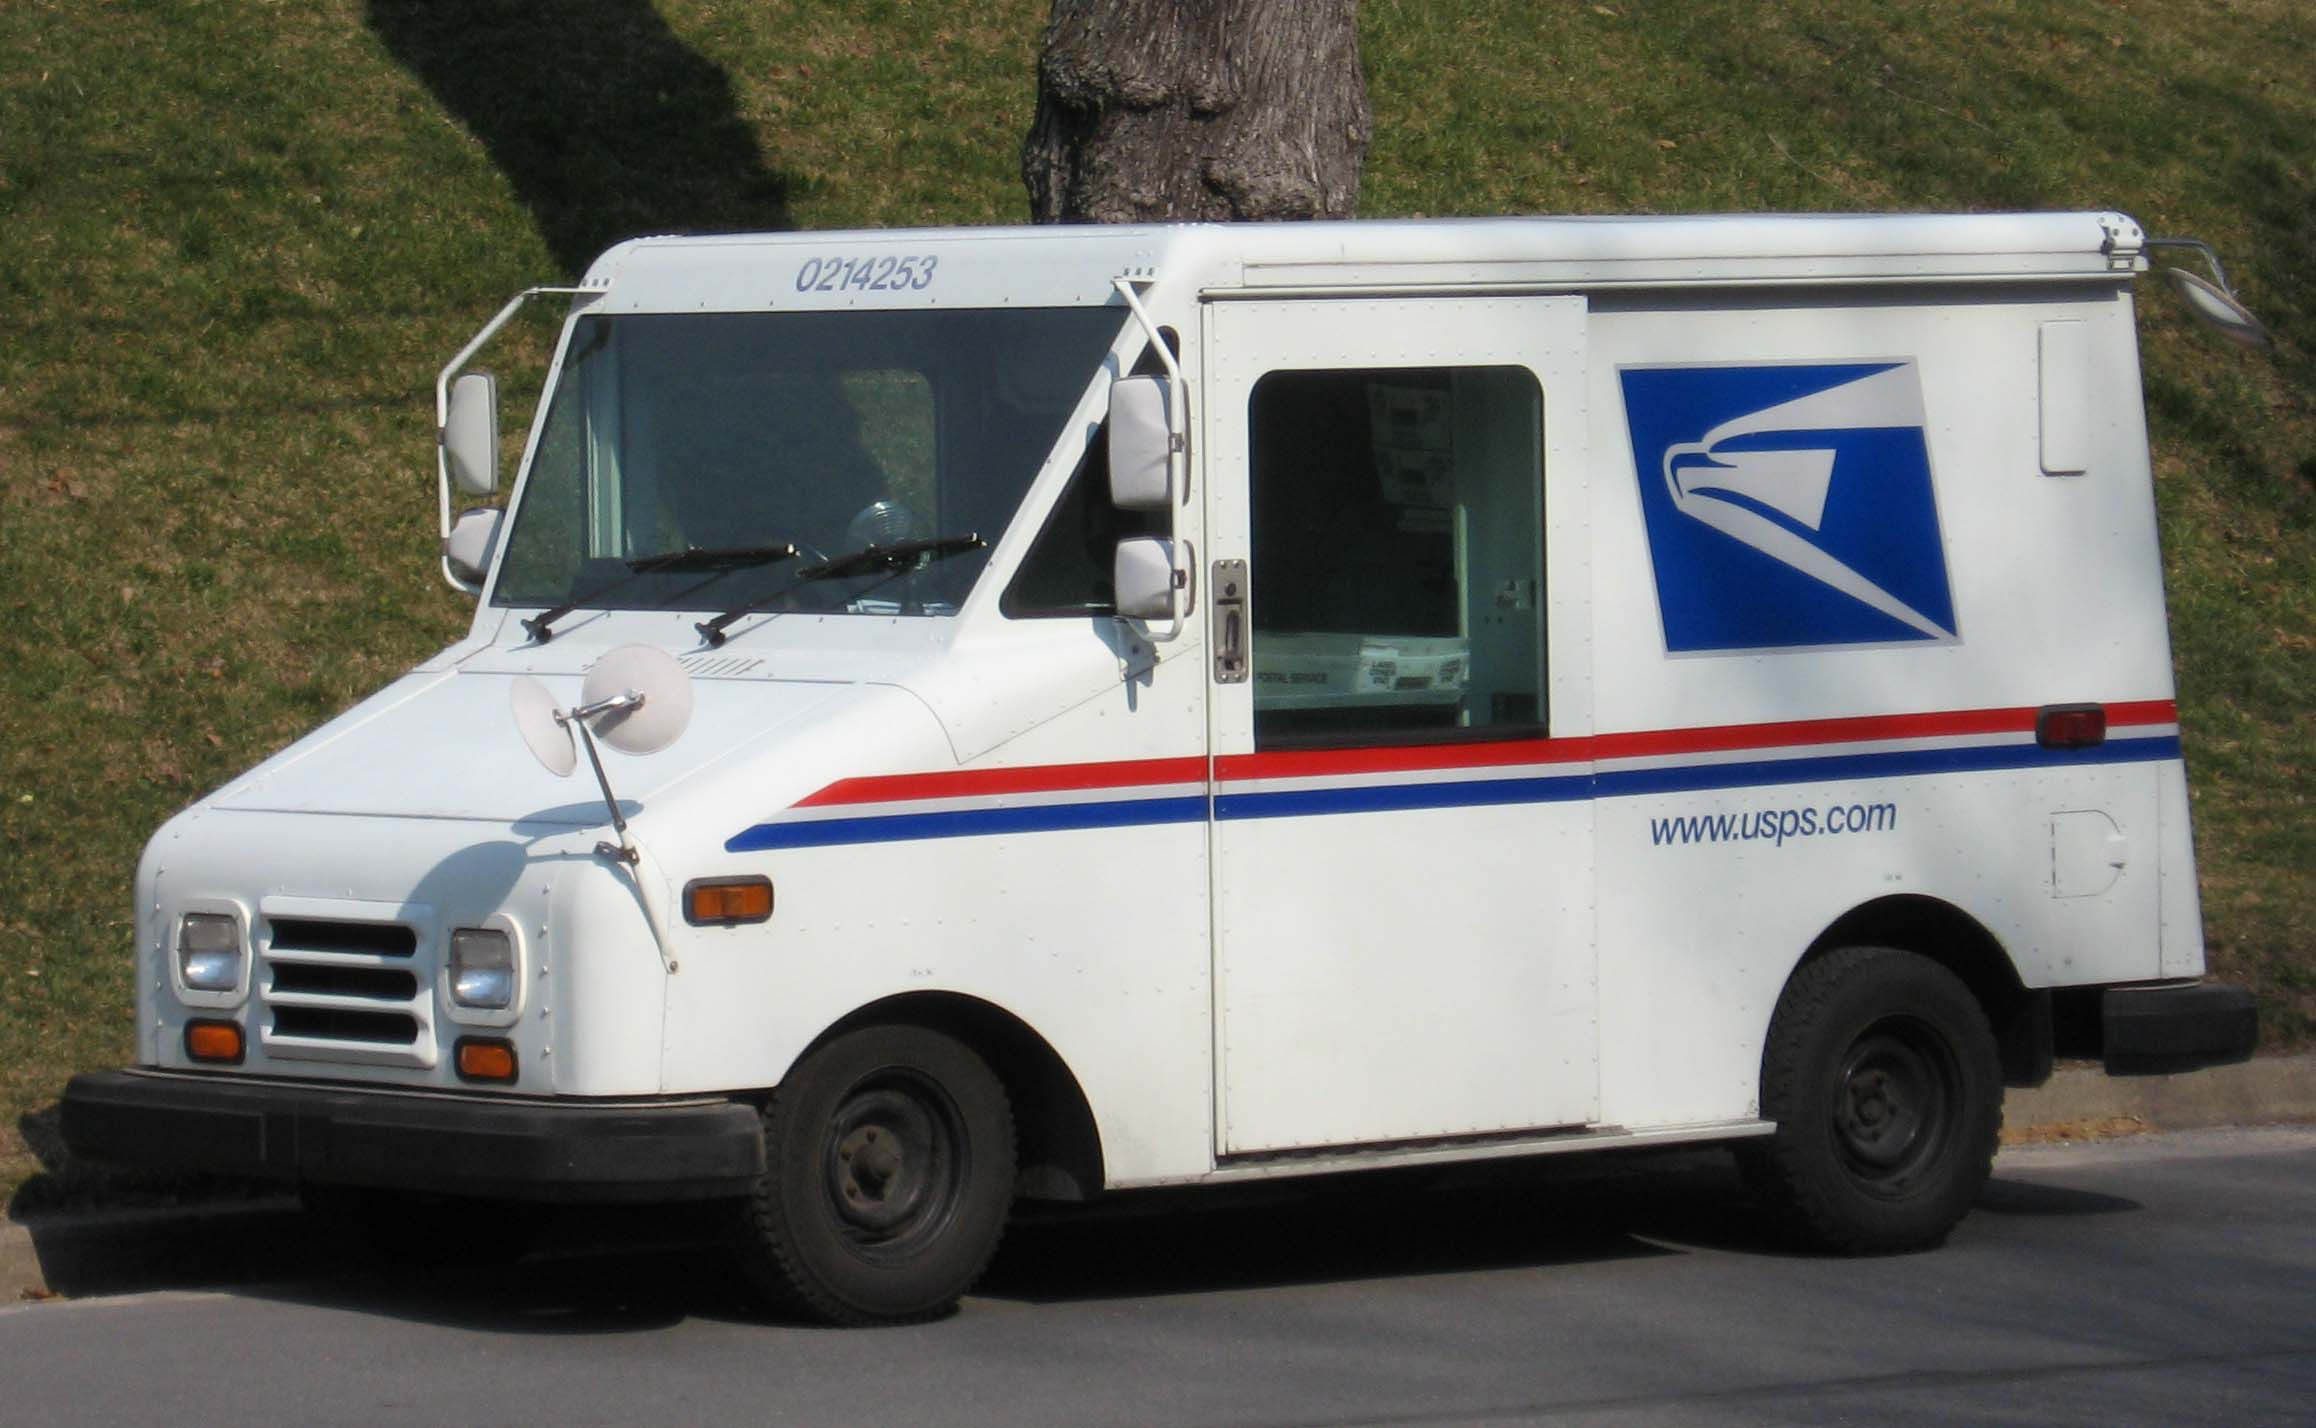 About the United States Postal Service USPS